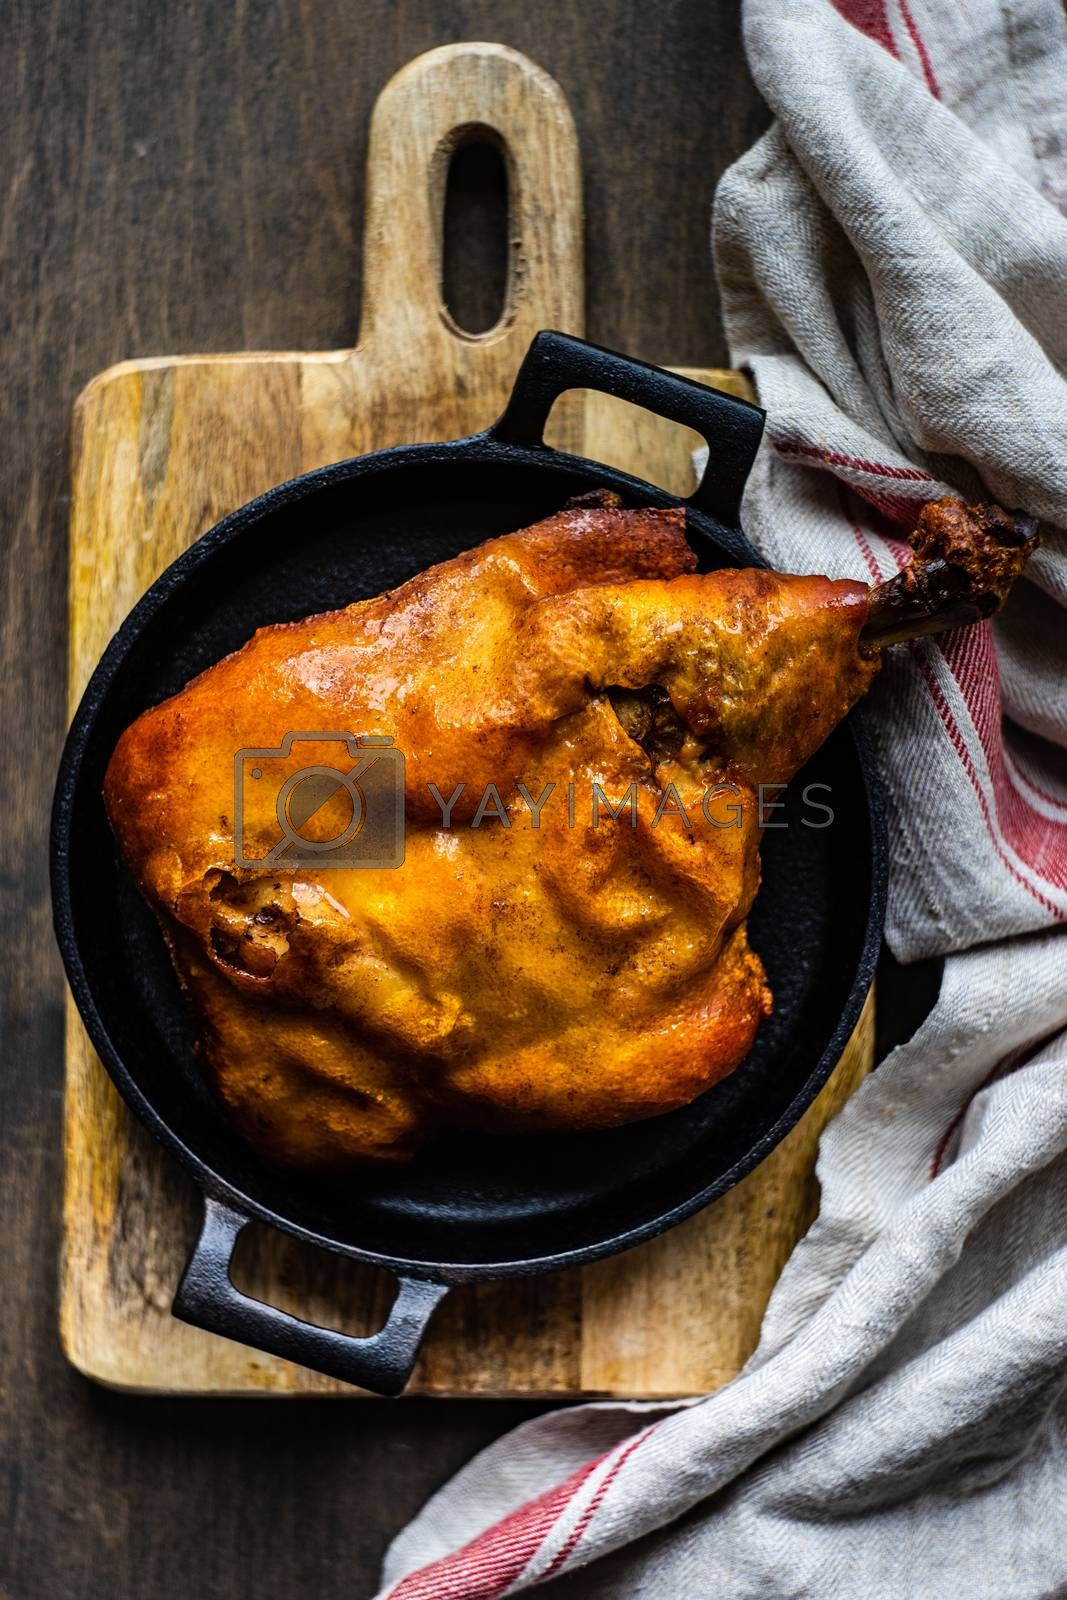 Traditional roasted pork leg in minimal serving on wooden table